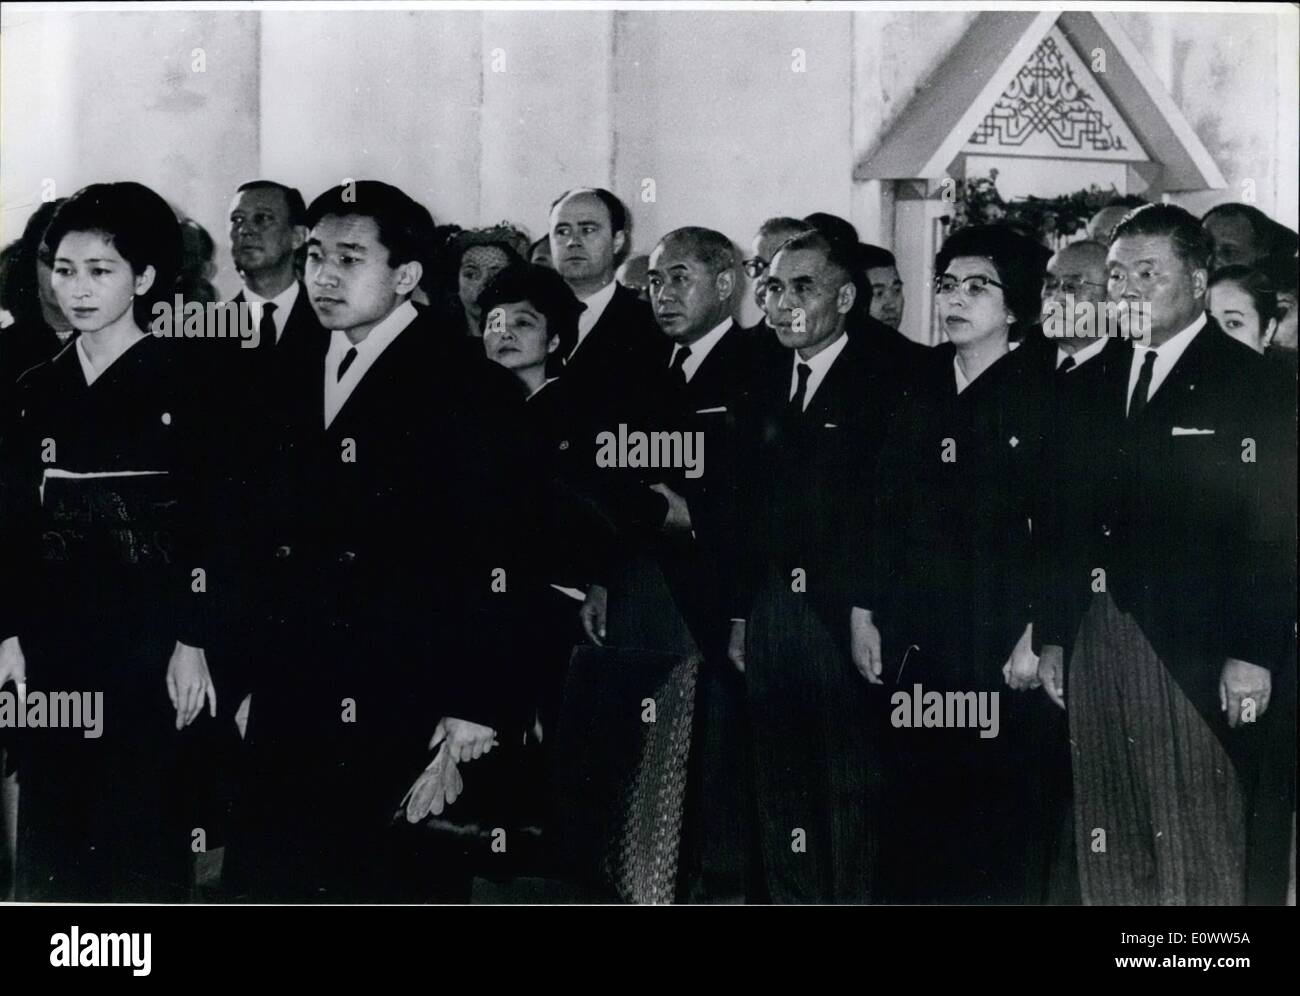 Mar. 03, 1964 - Crown Princess Michiko and Crown Prince Akihito in left foreground and other prominent Japanese Stock Photo